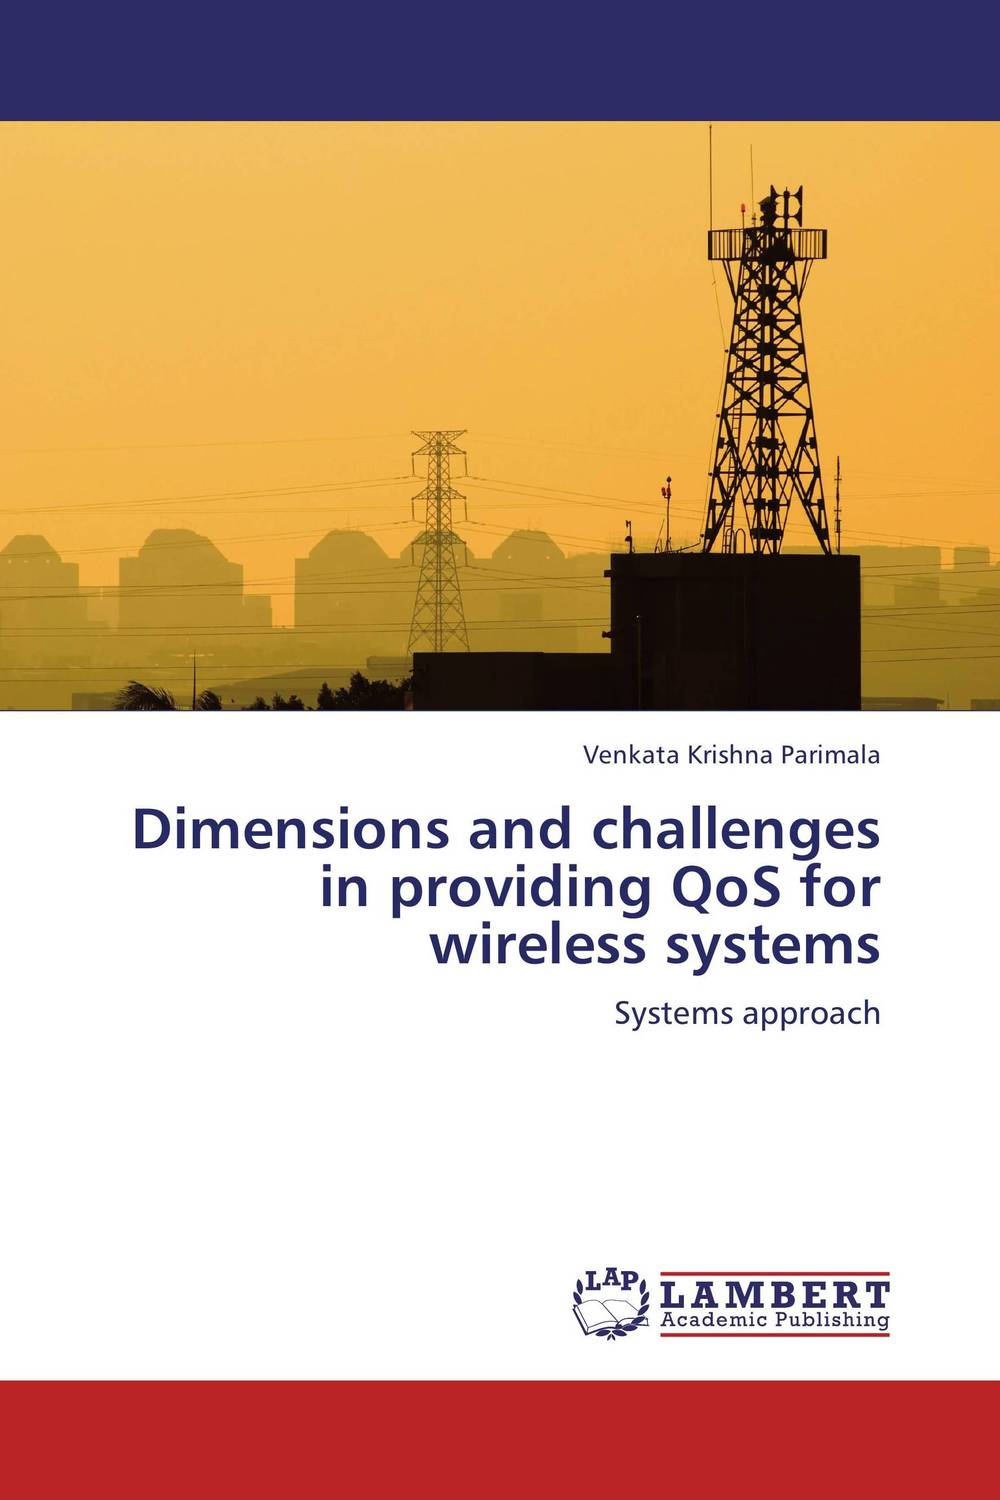 Dimensions and challenges in providing QoS for wireless systems prasanta kumar hota and anil kumar singh synthetic photoresponsive systems